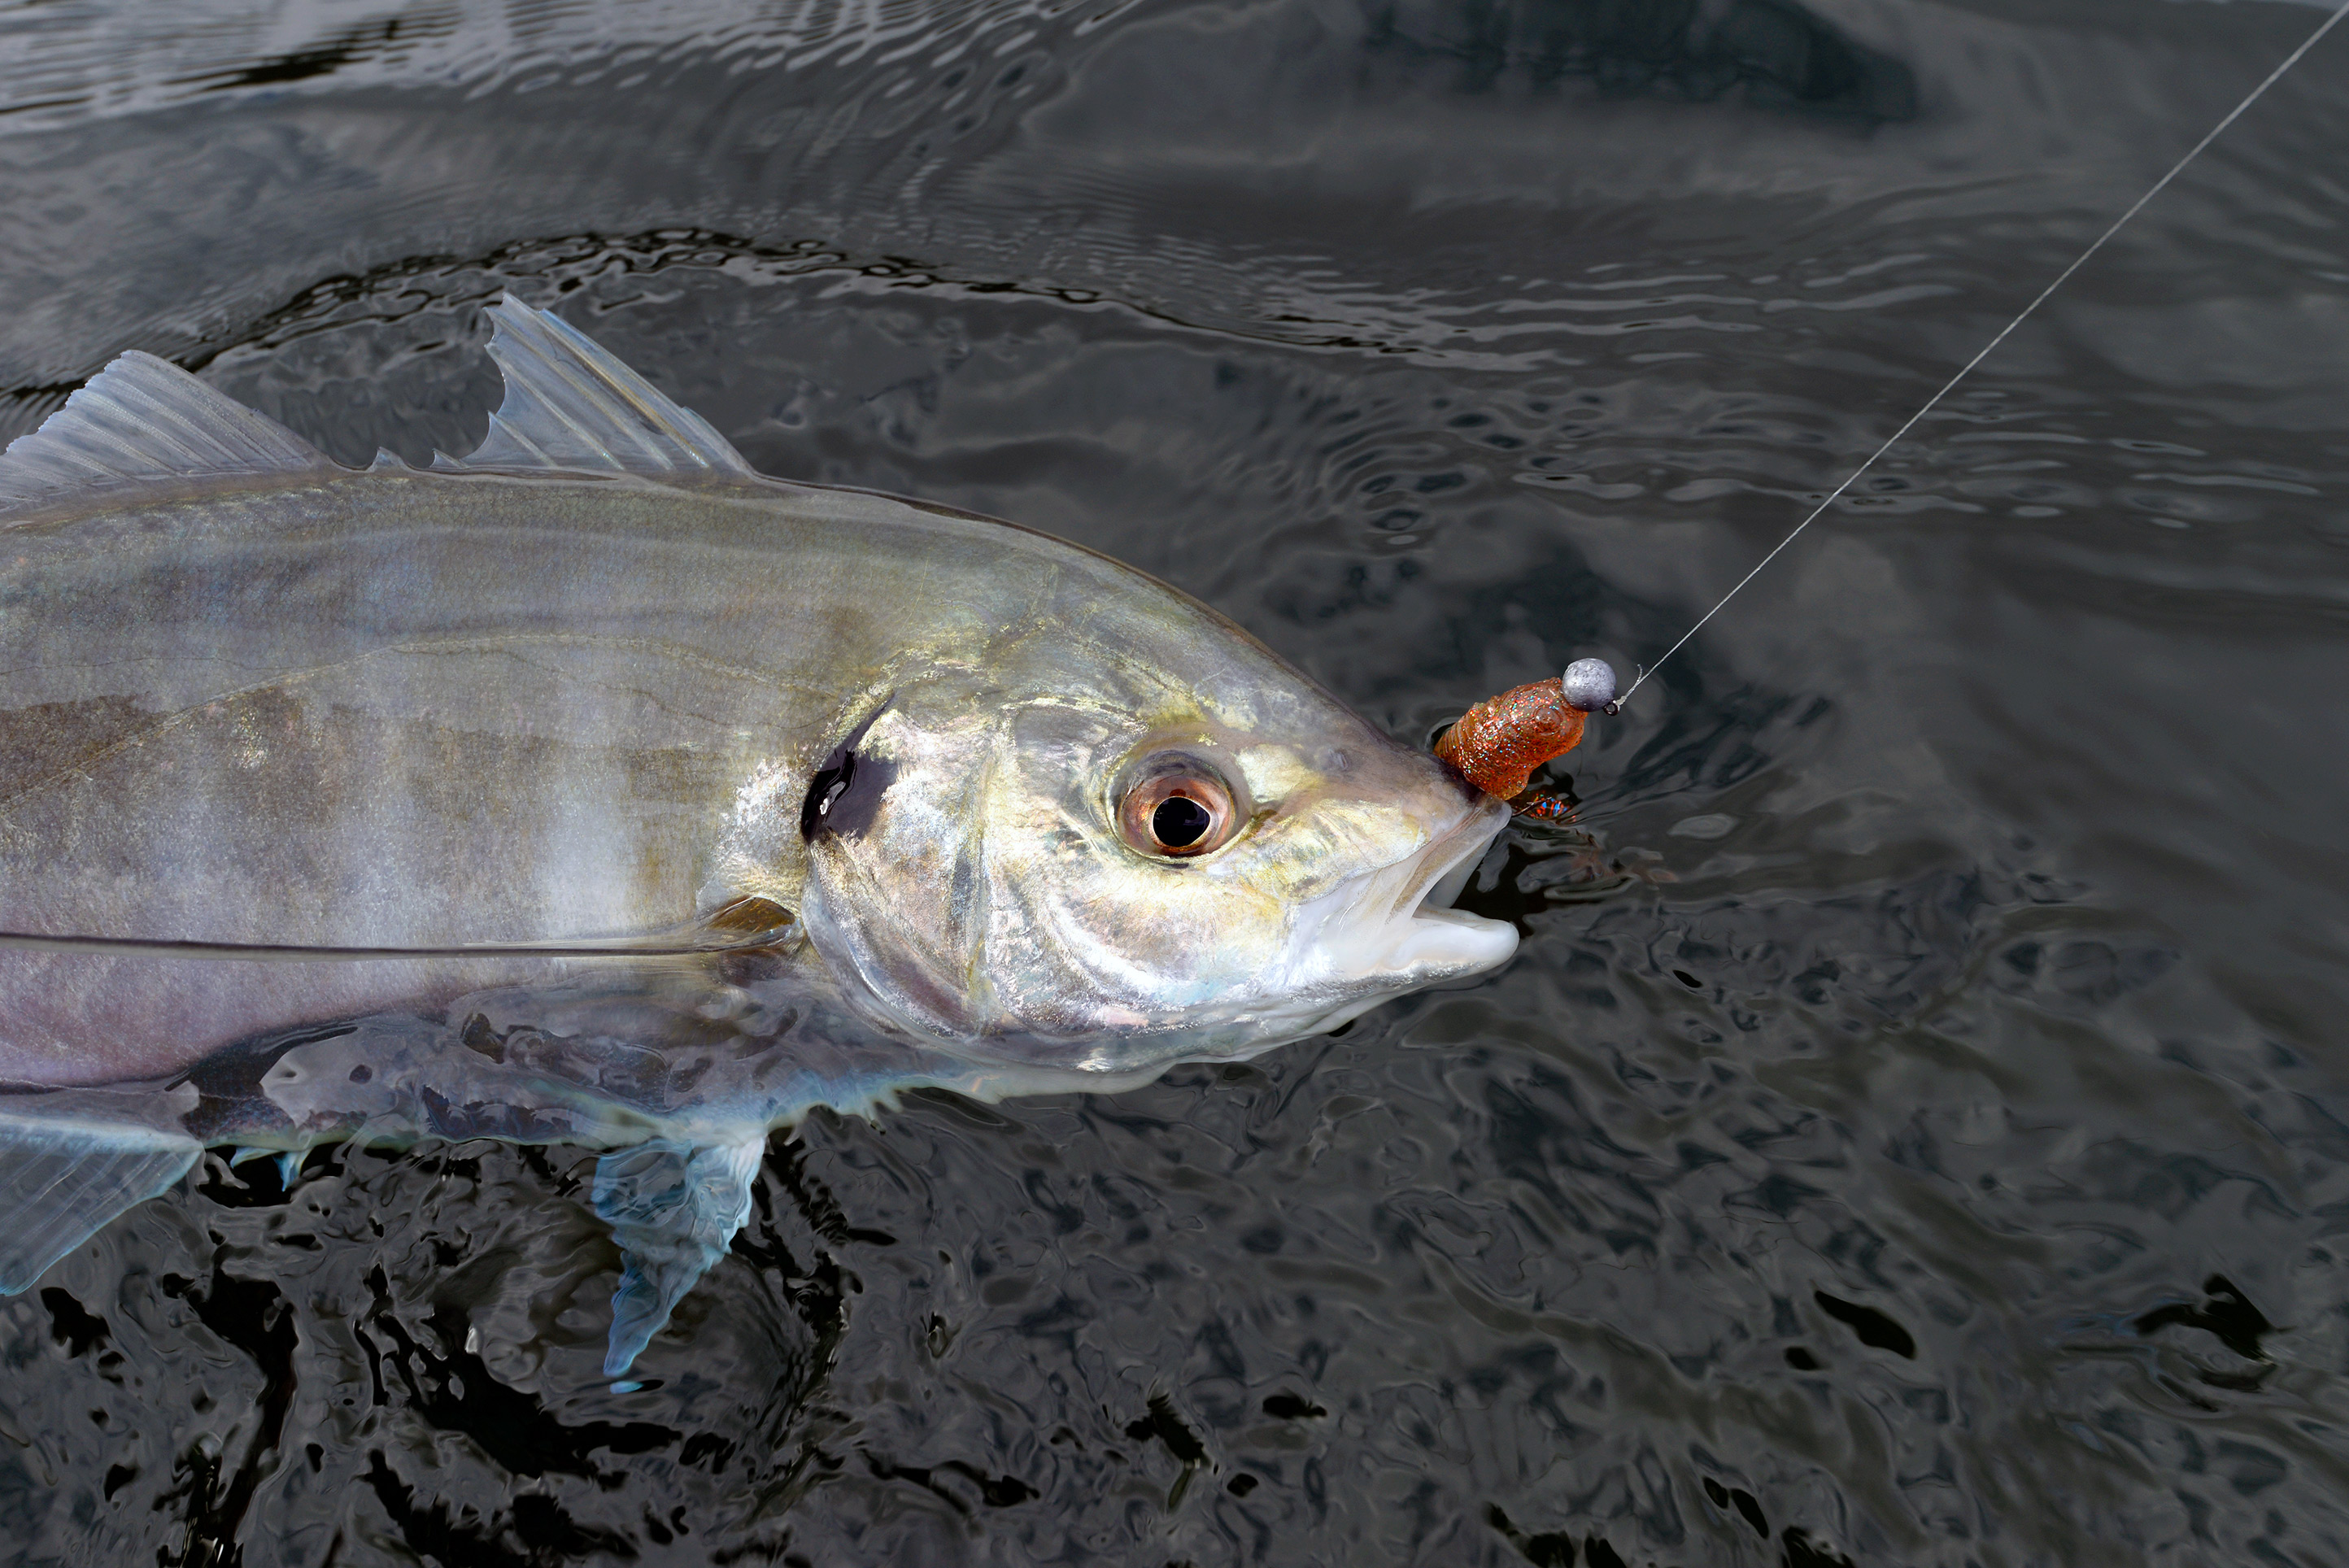 Another hefty silver trevally comes to the landing net after a spirited battle.